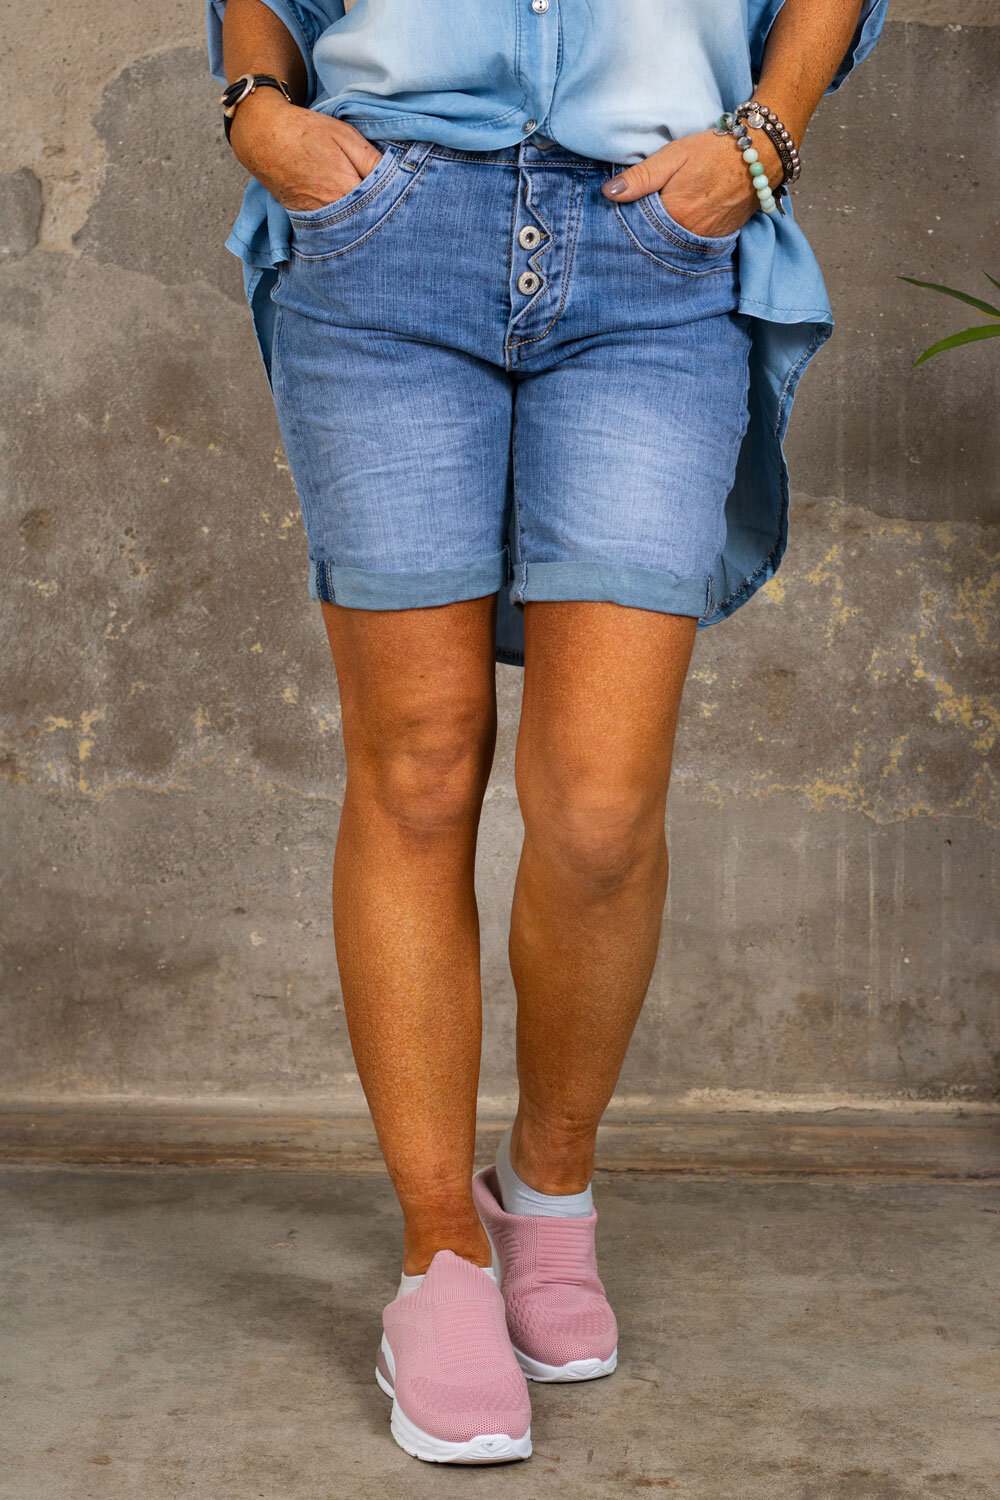 Jeans shorts S9356 - Button fly detail - Light wash